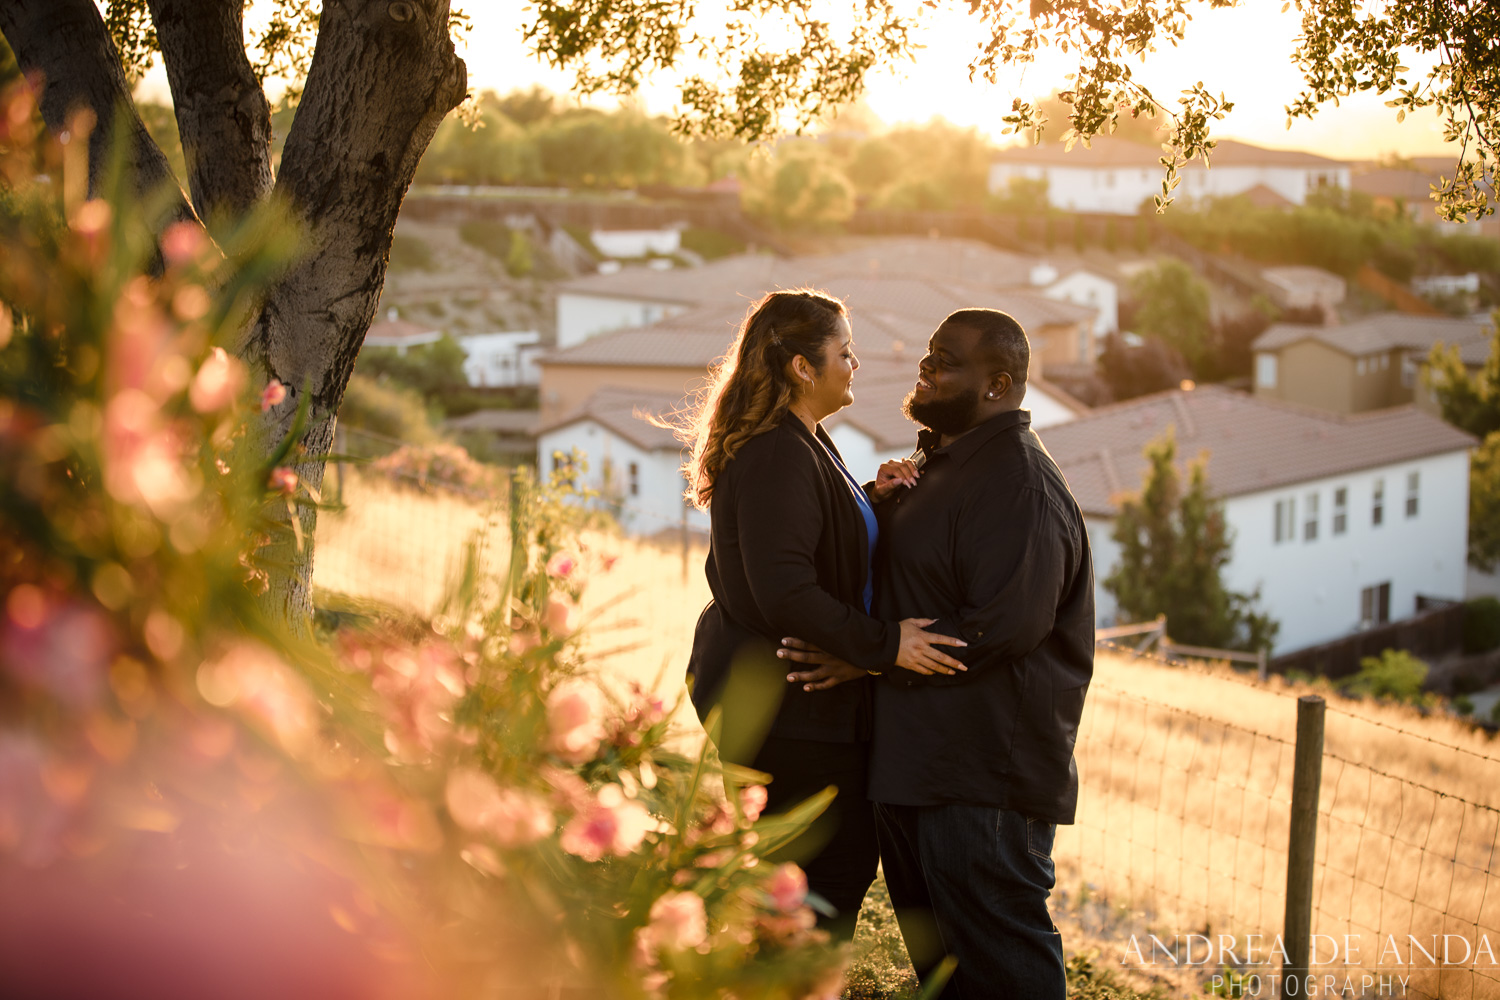 Evergreen-California-Engagement-session-Andrea-de-Anda-photography_-17.jpg